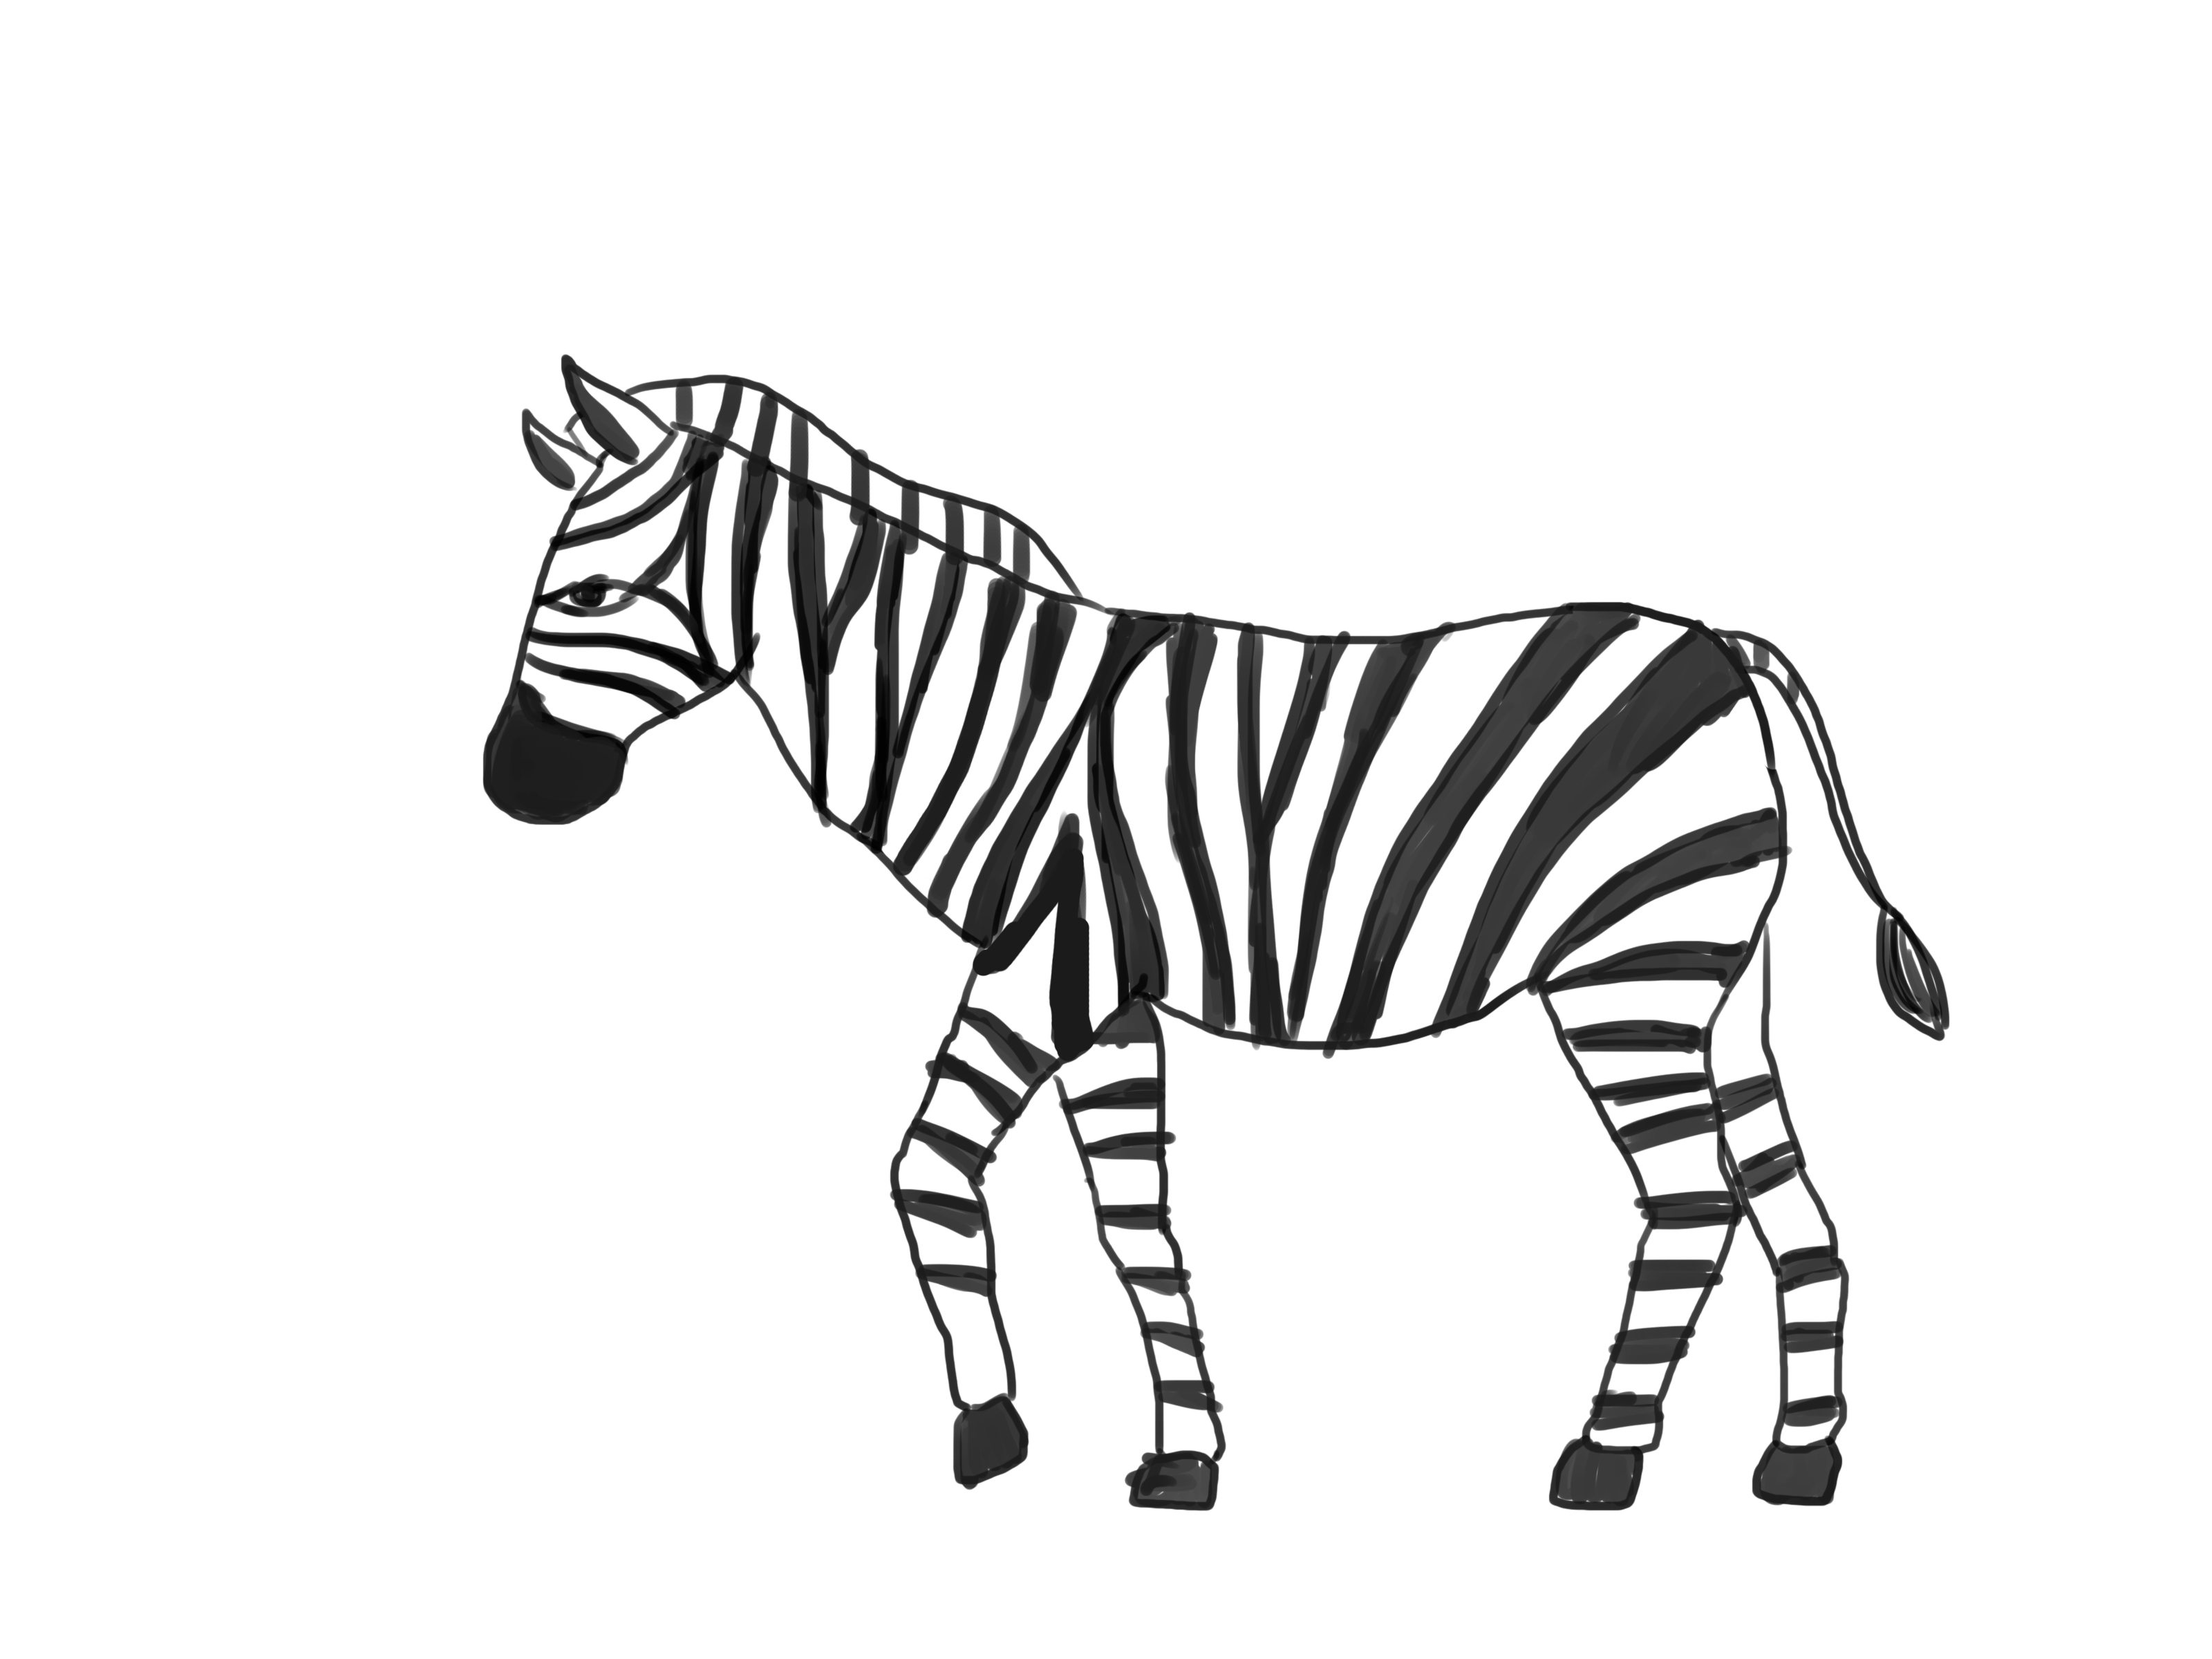 Line Drawing Zebra : Zebra line drawing clipart best